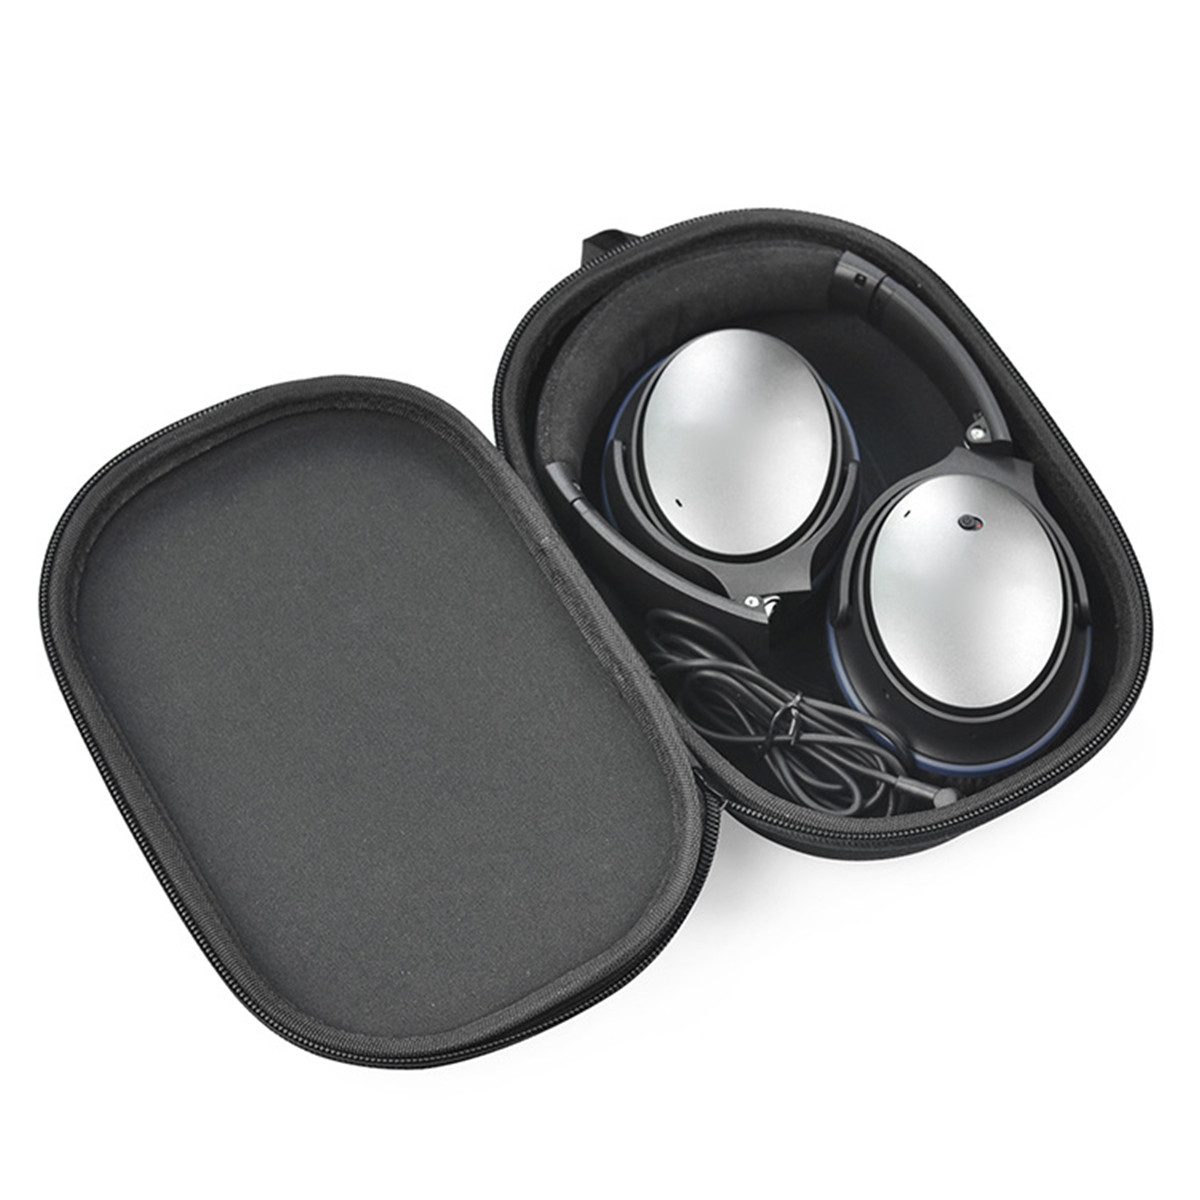 1e8d045aa43 Waterproof Dustproof EVA Portable Storage Box Carry Shell Case Bag For Bose  QC15 QC25 QC35 Headphone Convenient Black Protect-in Earphone Accessories  from ...